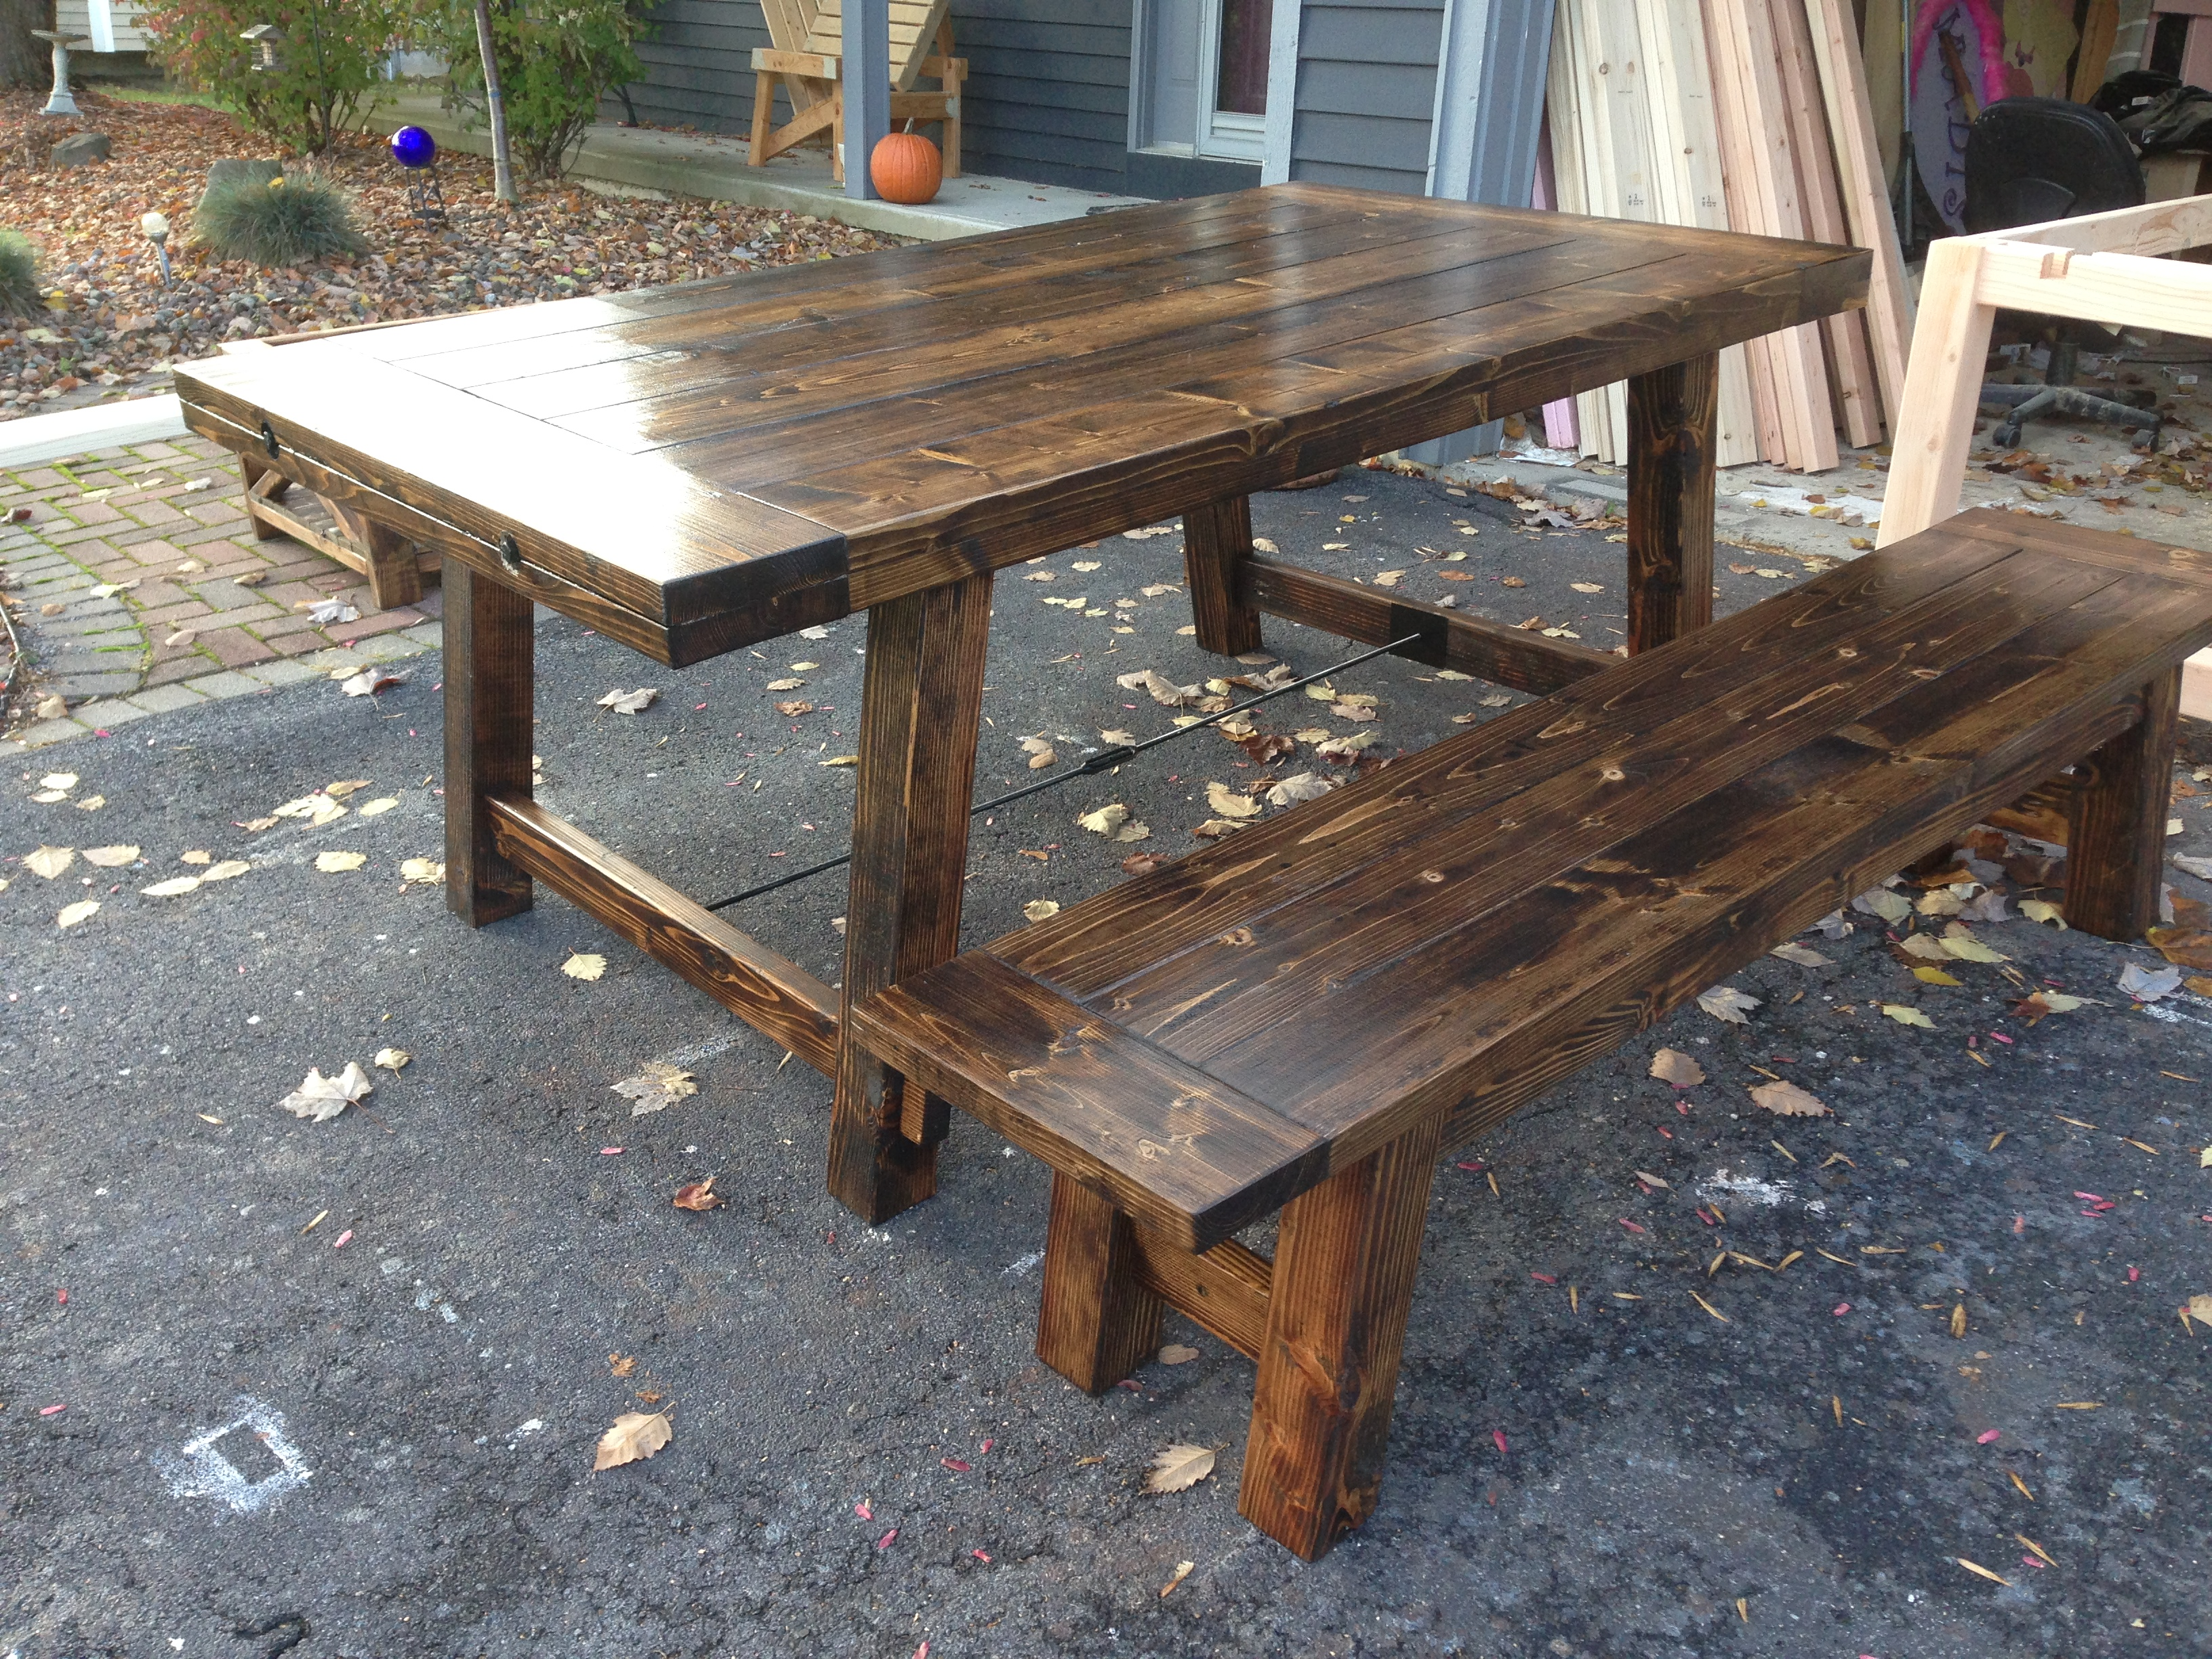 Ana white rustic benchright table and bench diy projects for Ana white table bench